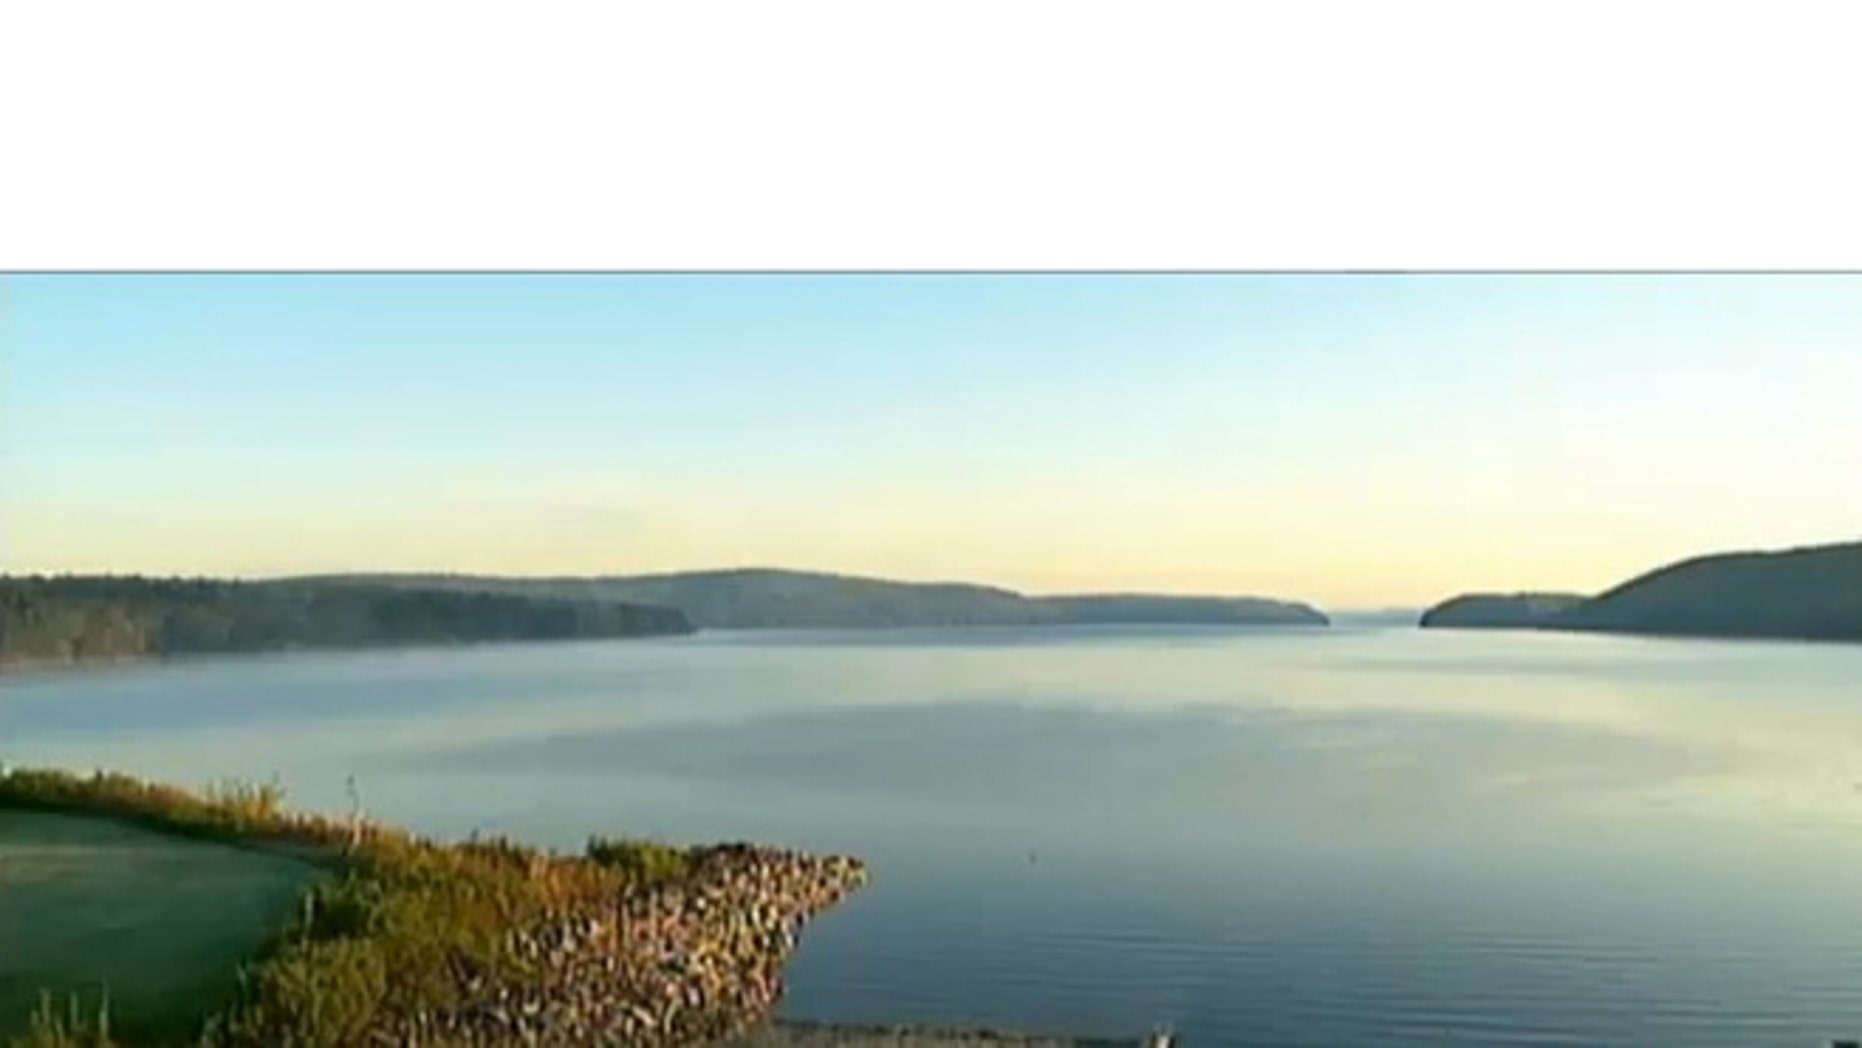 Quabbin reservoir near Amhurst, MA provides water for the City of Boston and 40 other communities in the state.